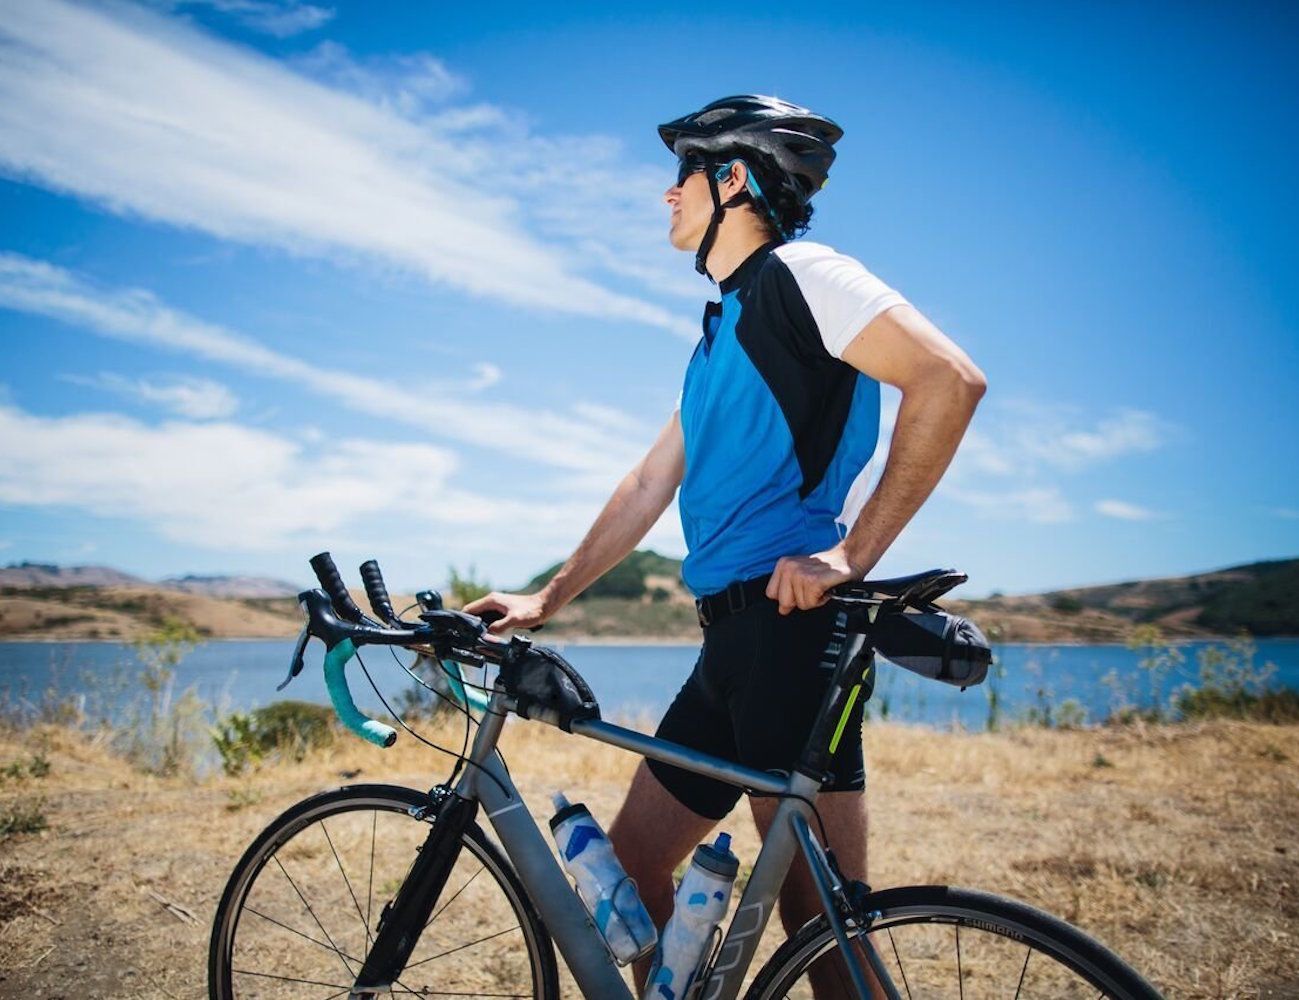 AfterShokz TREKZ Open-Ear Bluetooth Headphones